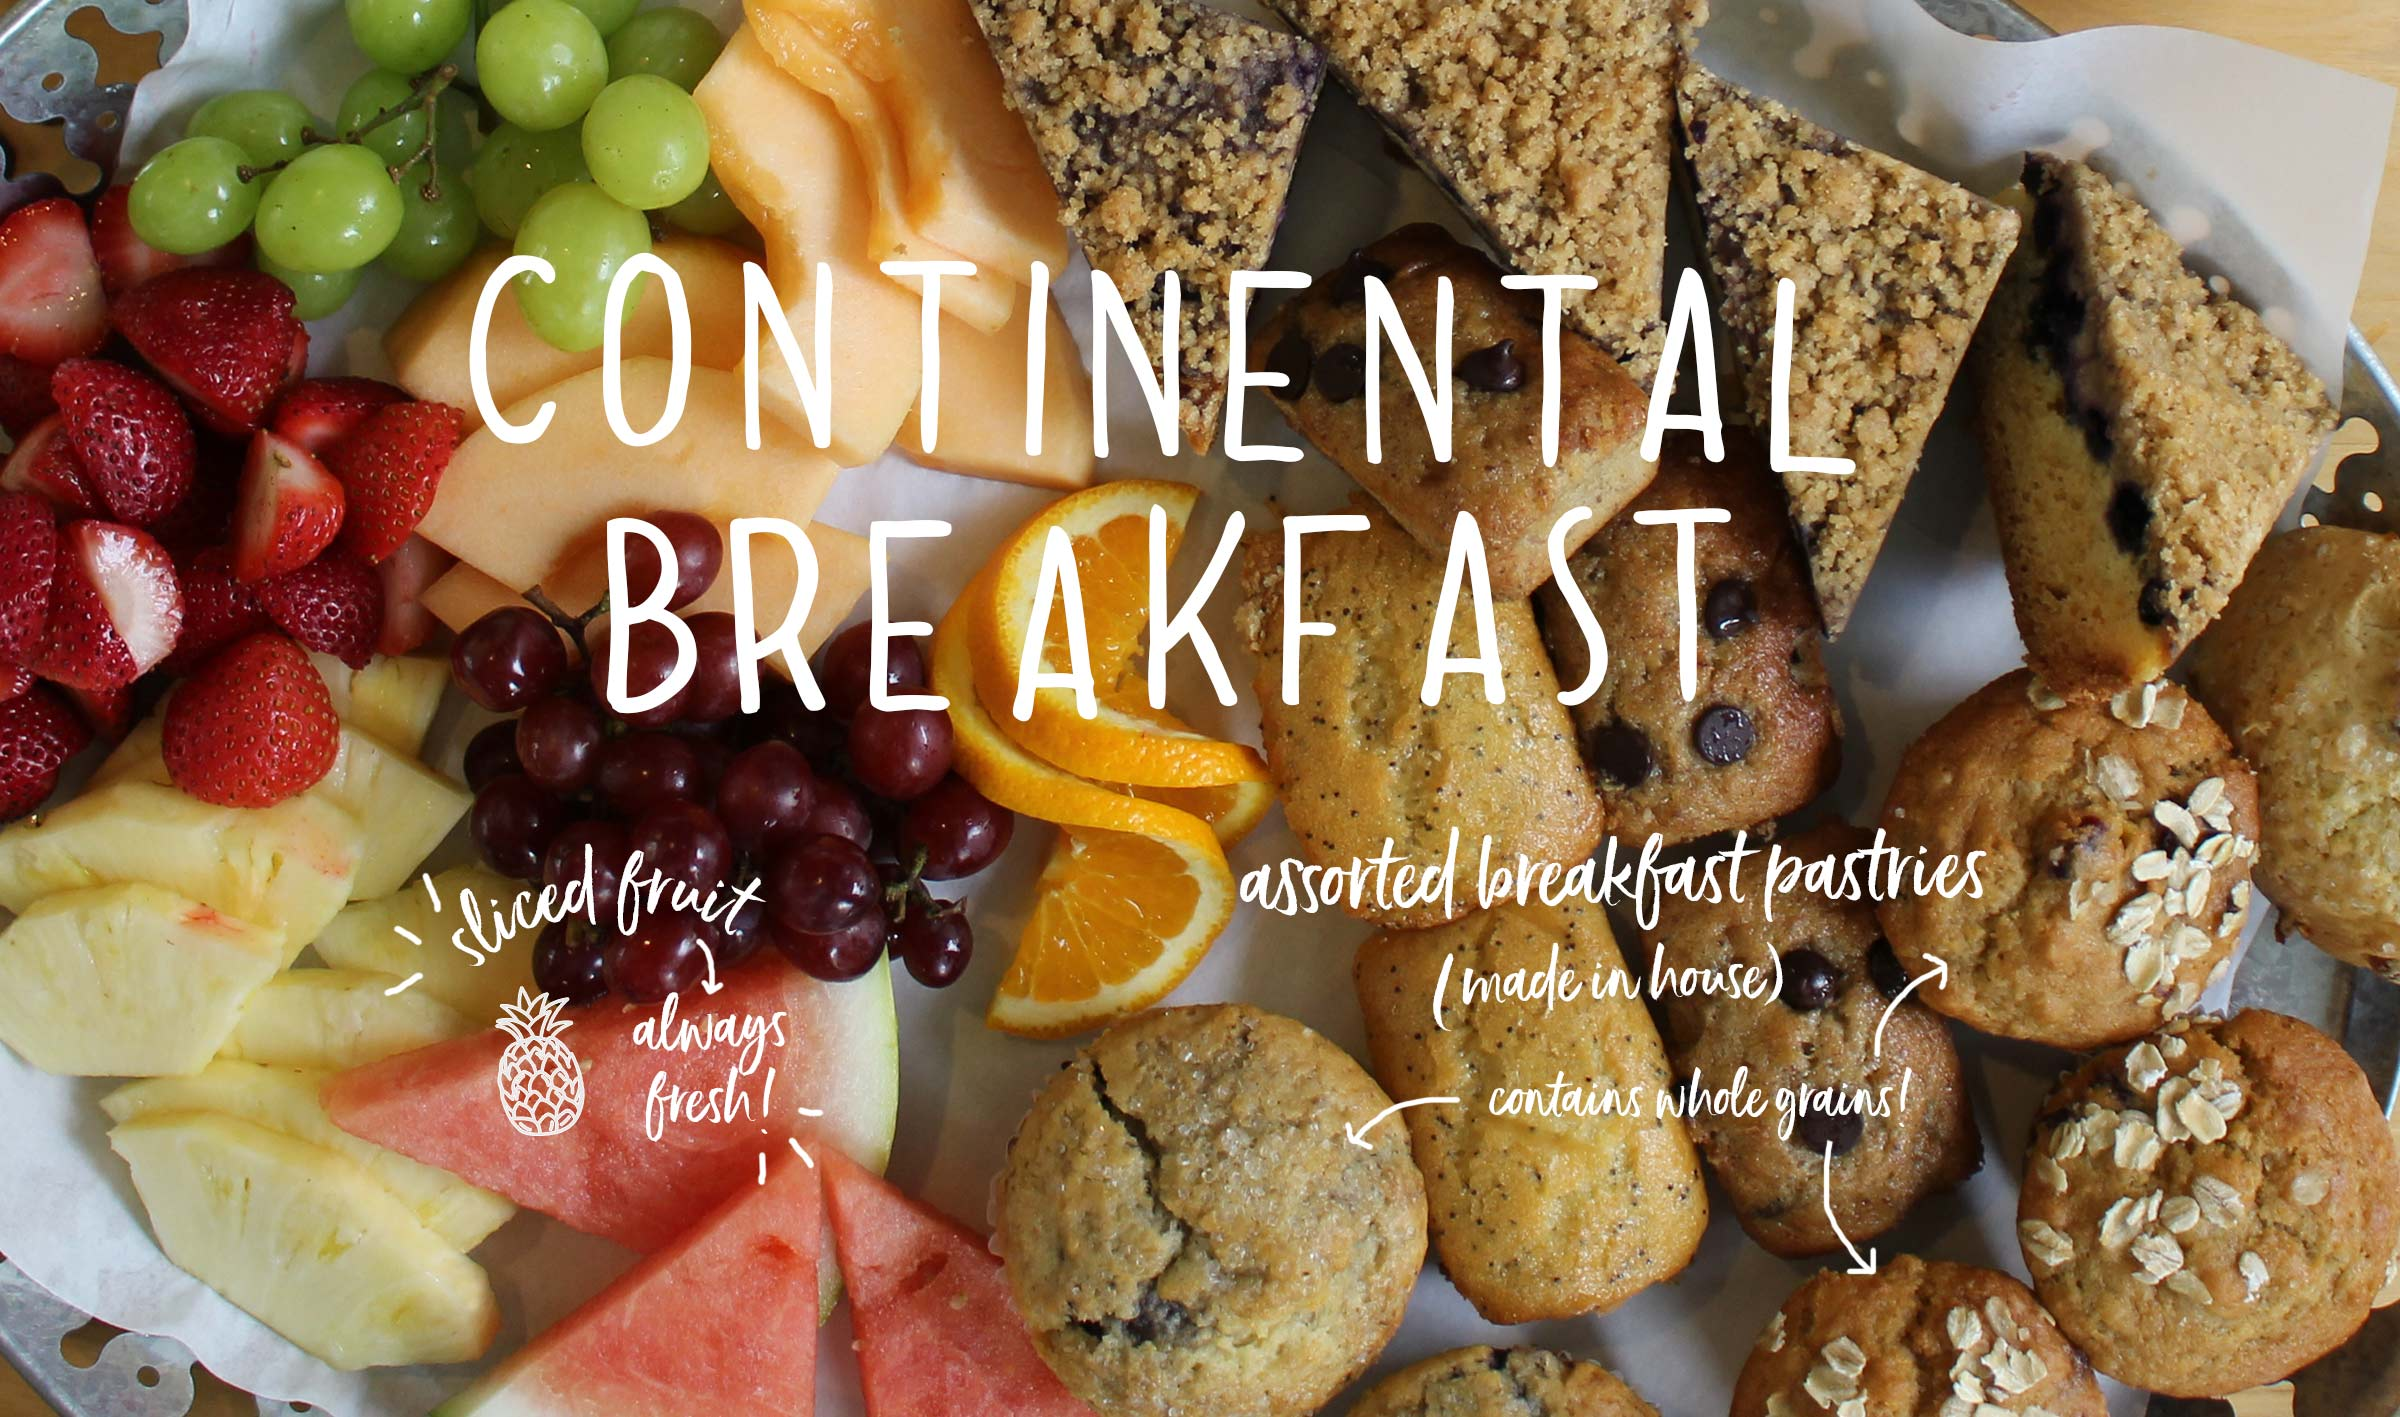 Continental Breakfast: fresh produce and fresh-baked pastries